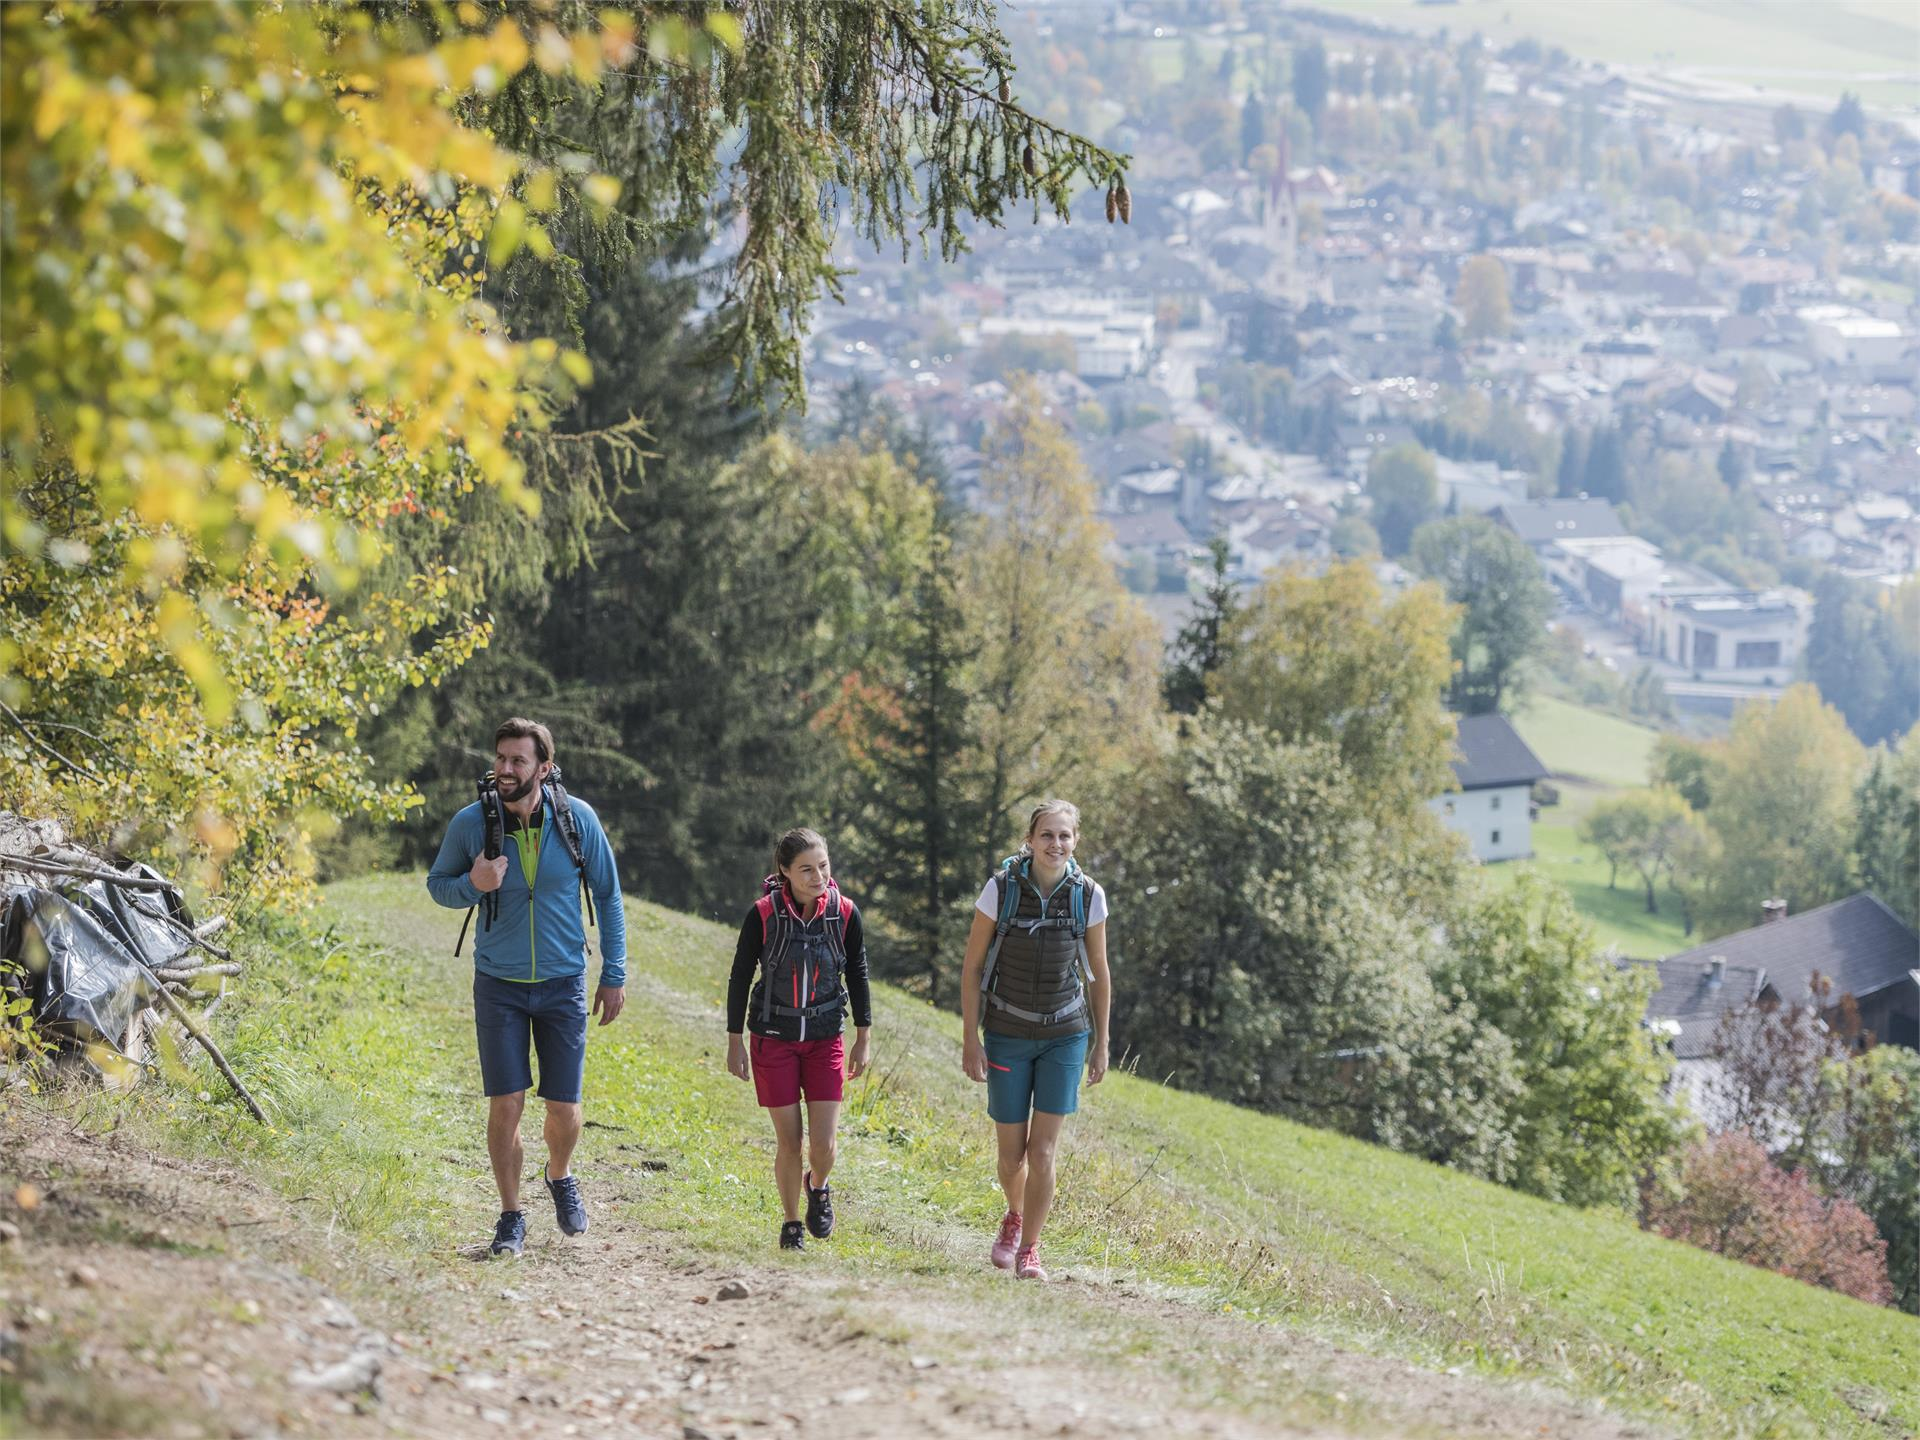 Hiking tour on the Dolomites Panorama Trail